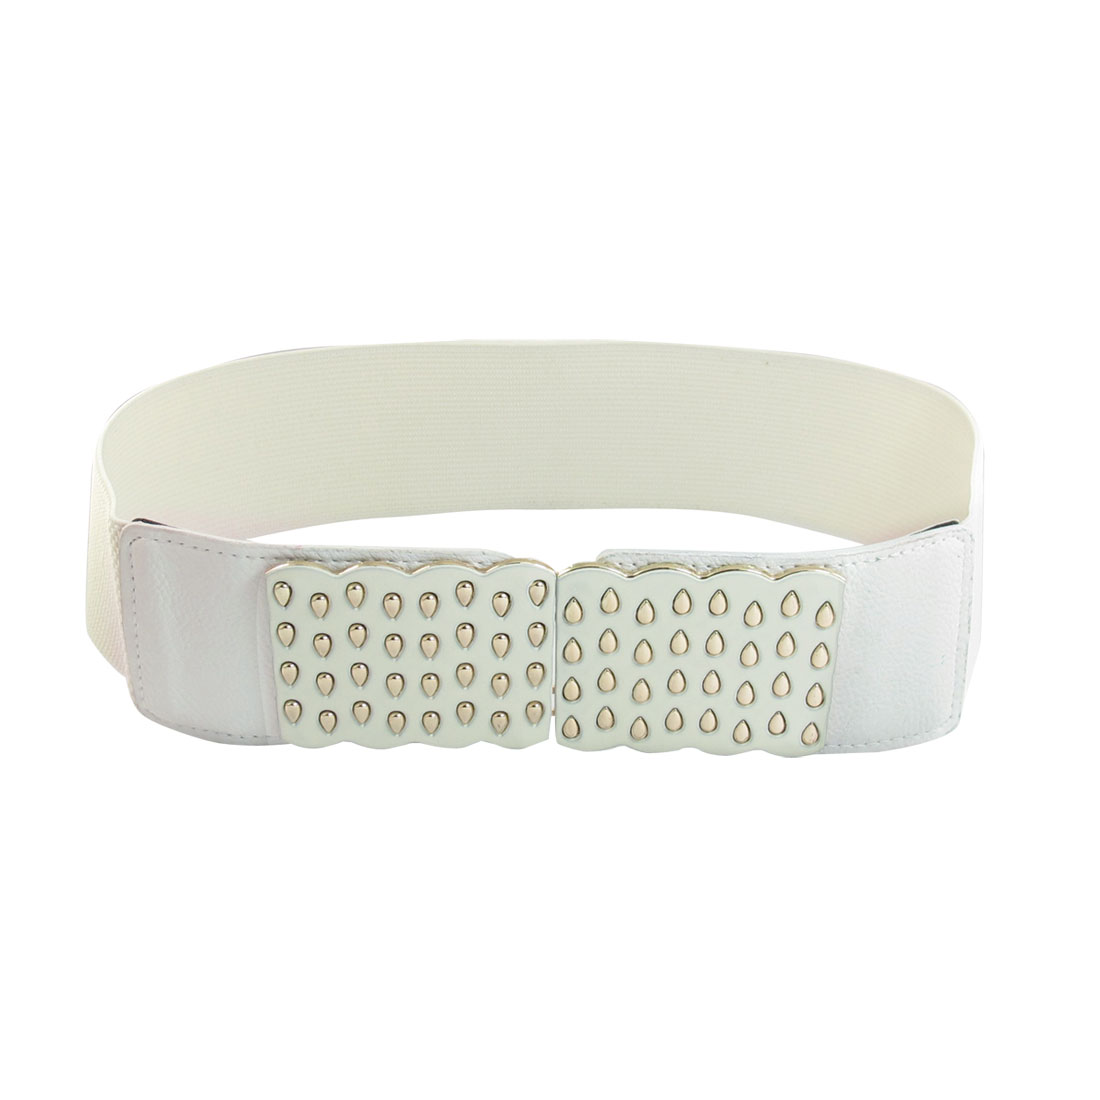 White Faux Leather Detail 6cm Width Stretchy Waistband Belt for Ladies